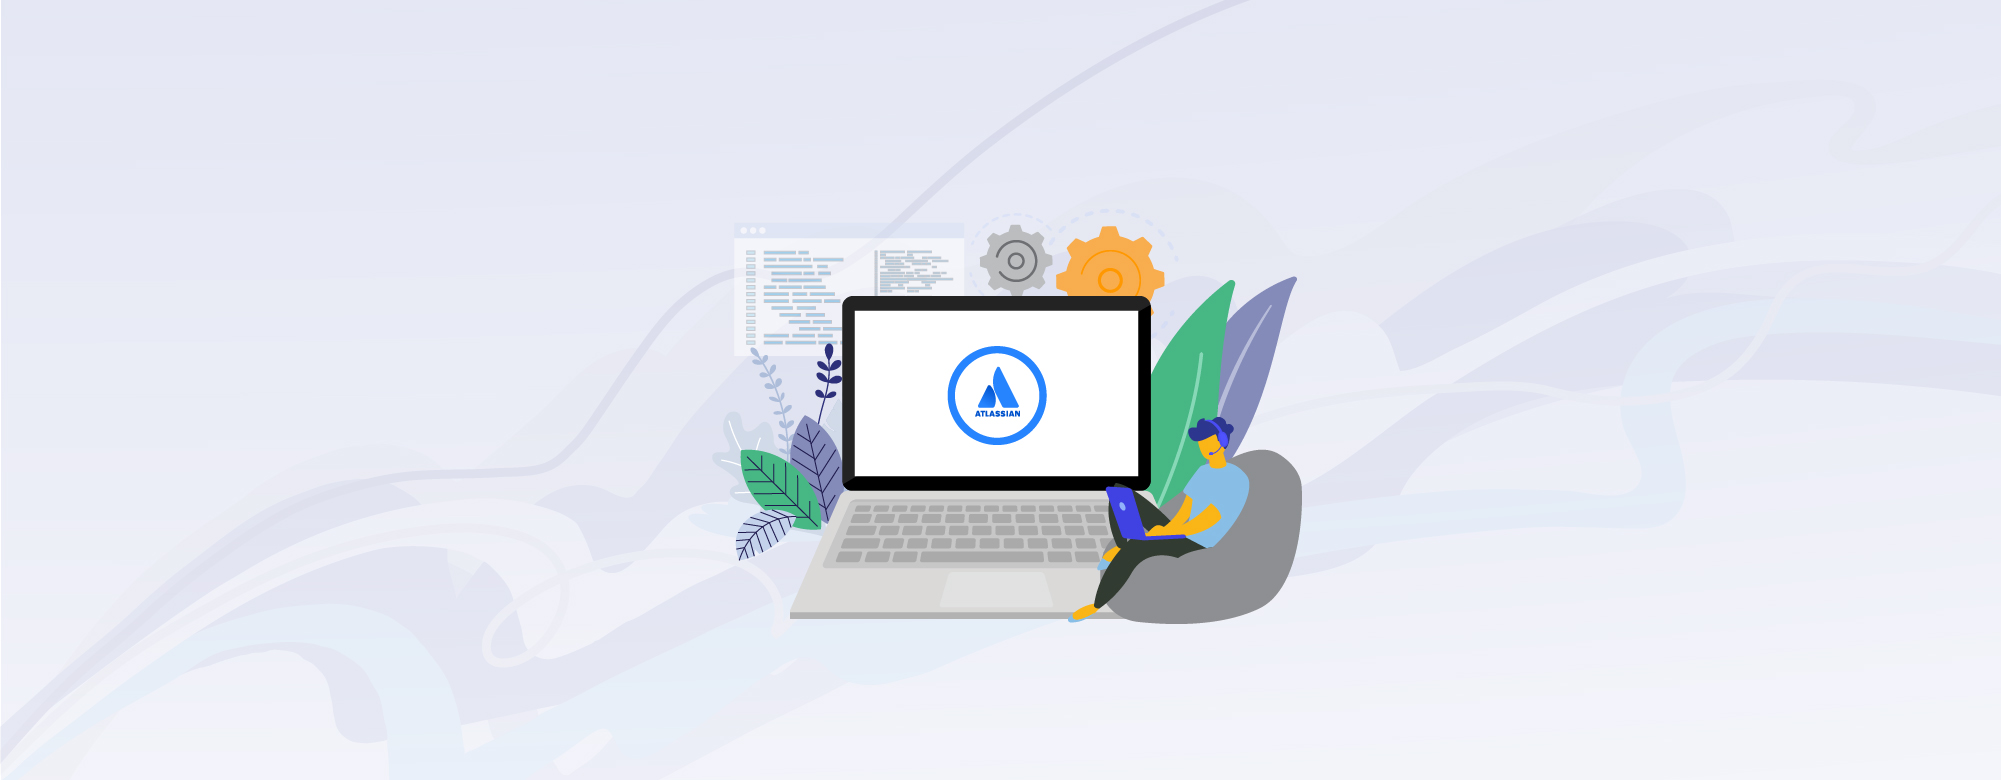 Distance Learning With Atlassian: Remote Training Your People